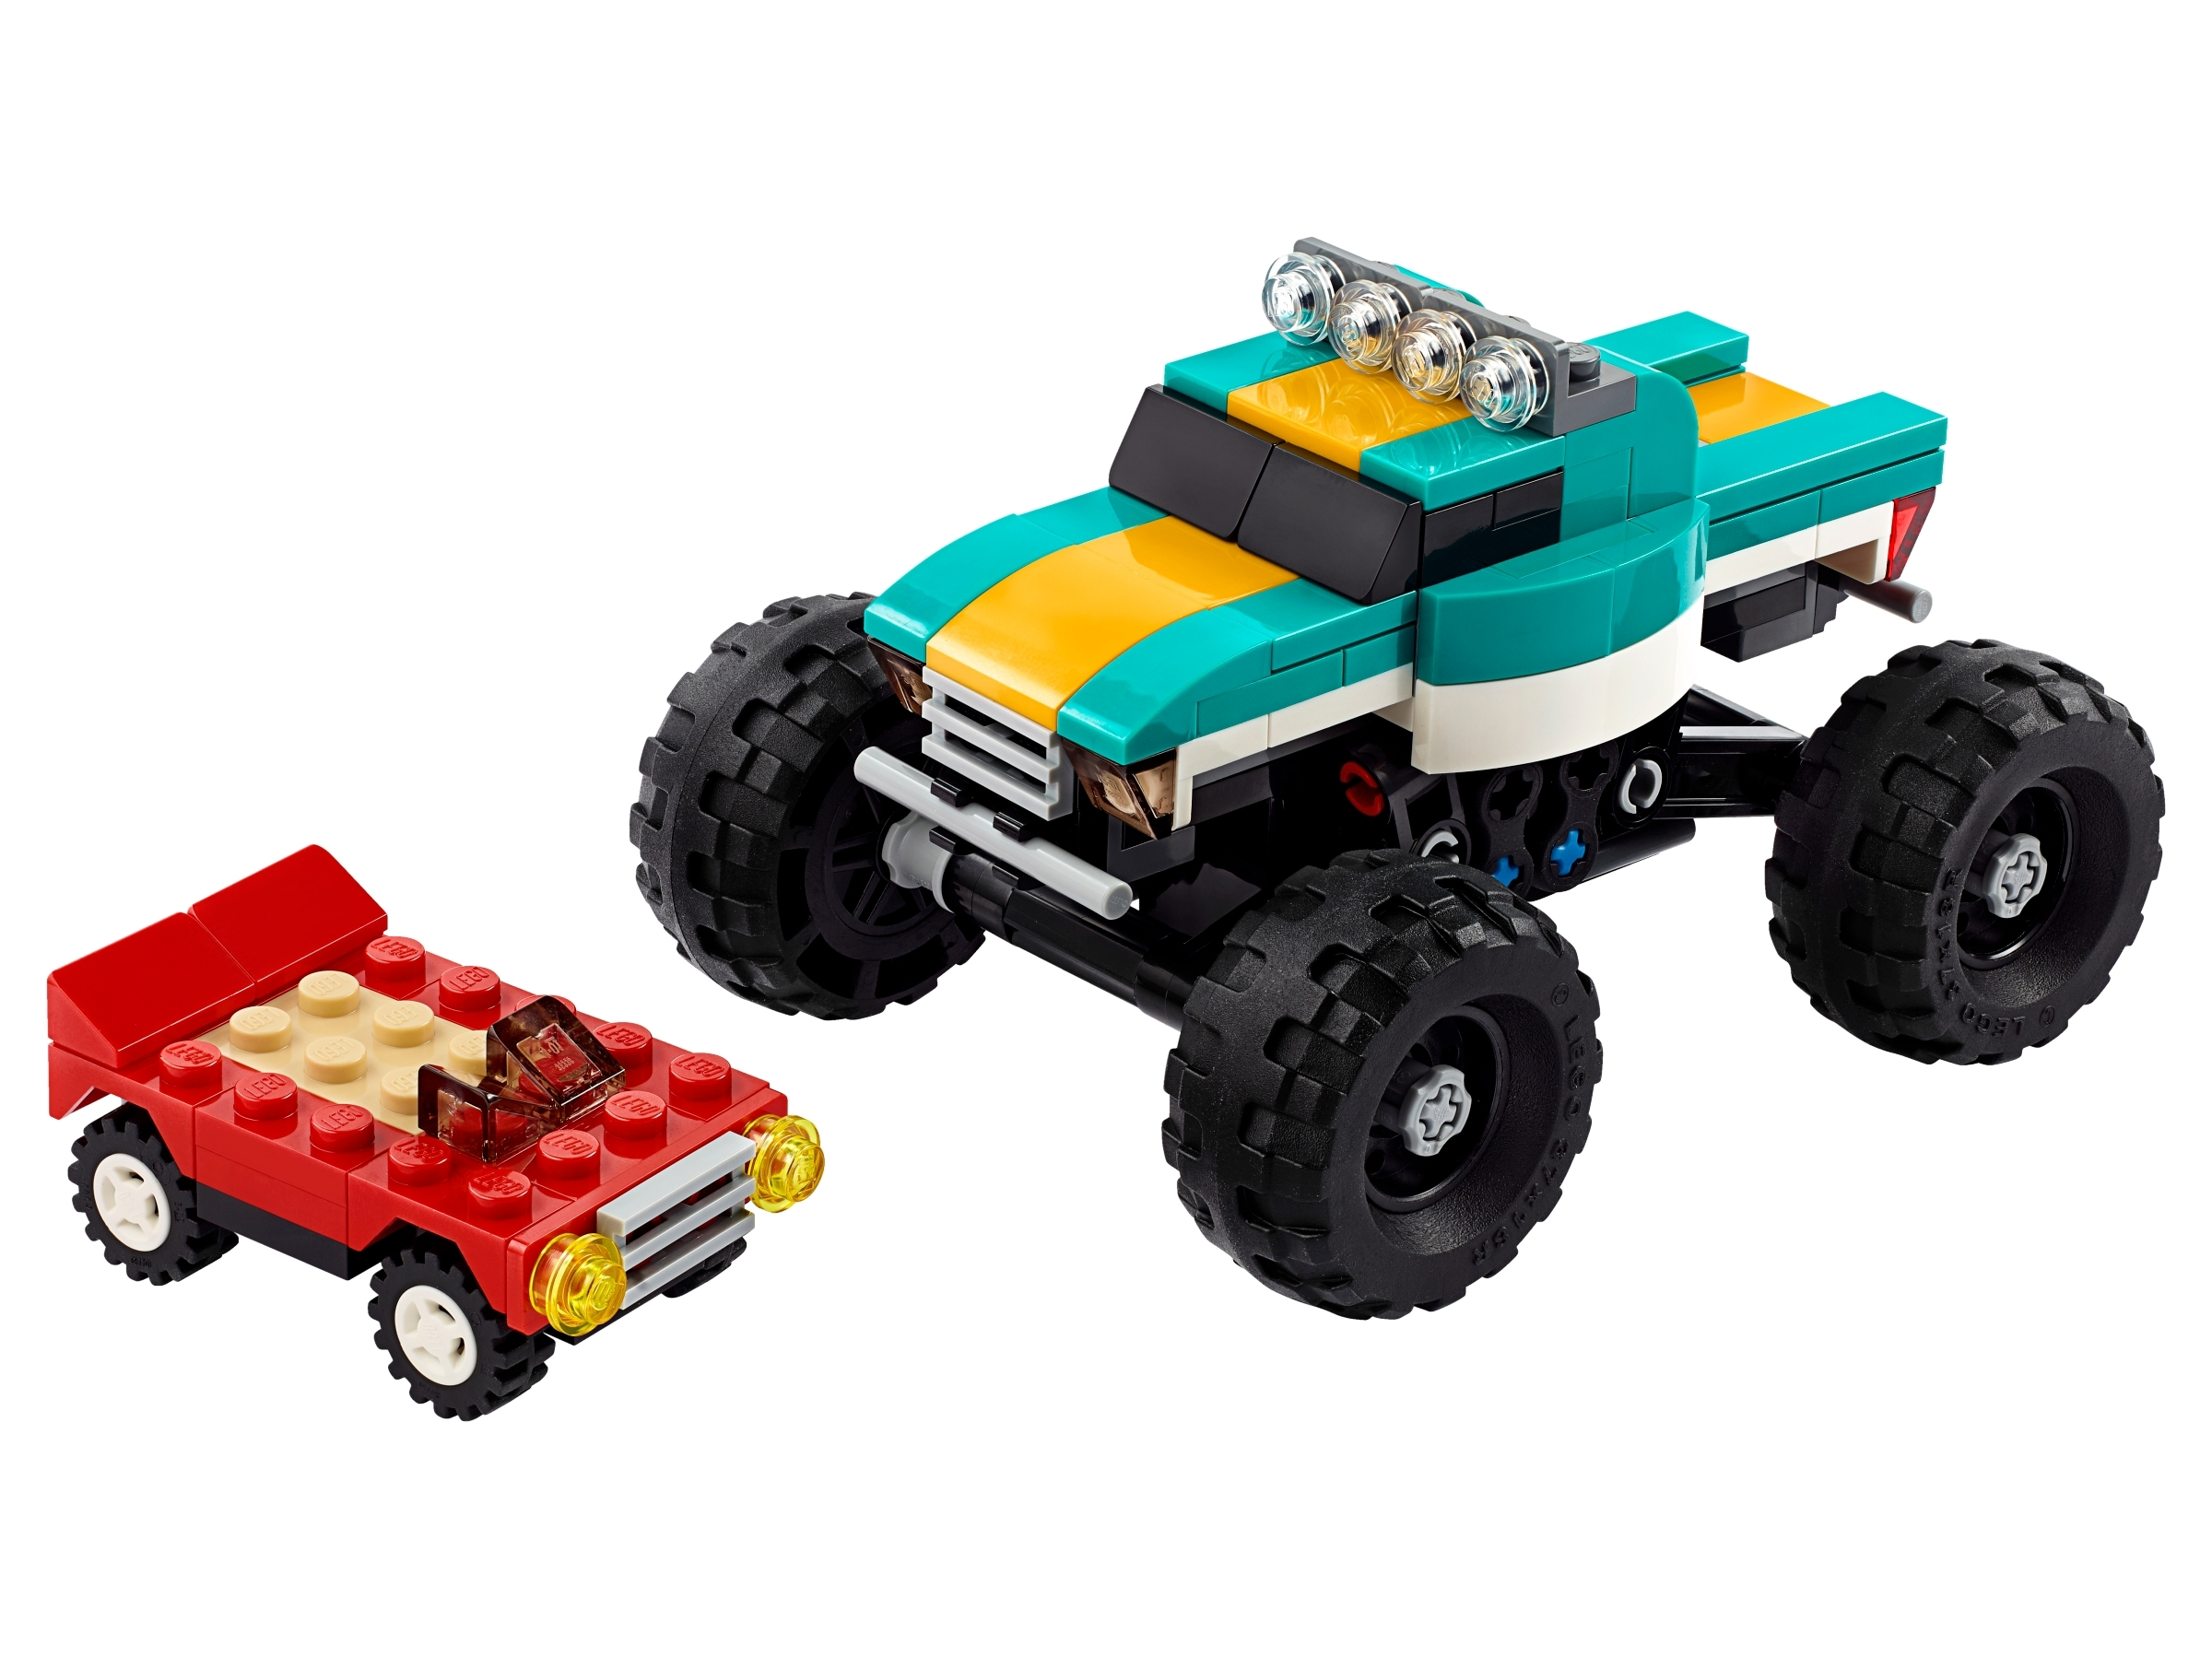 Monster Truck 31101 Creator 3 In 1 Buy Online At The Official Lego Shop Us